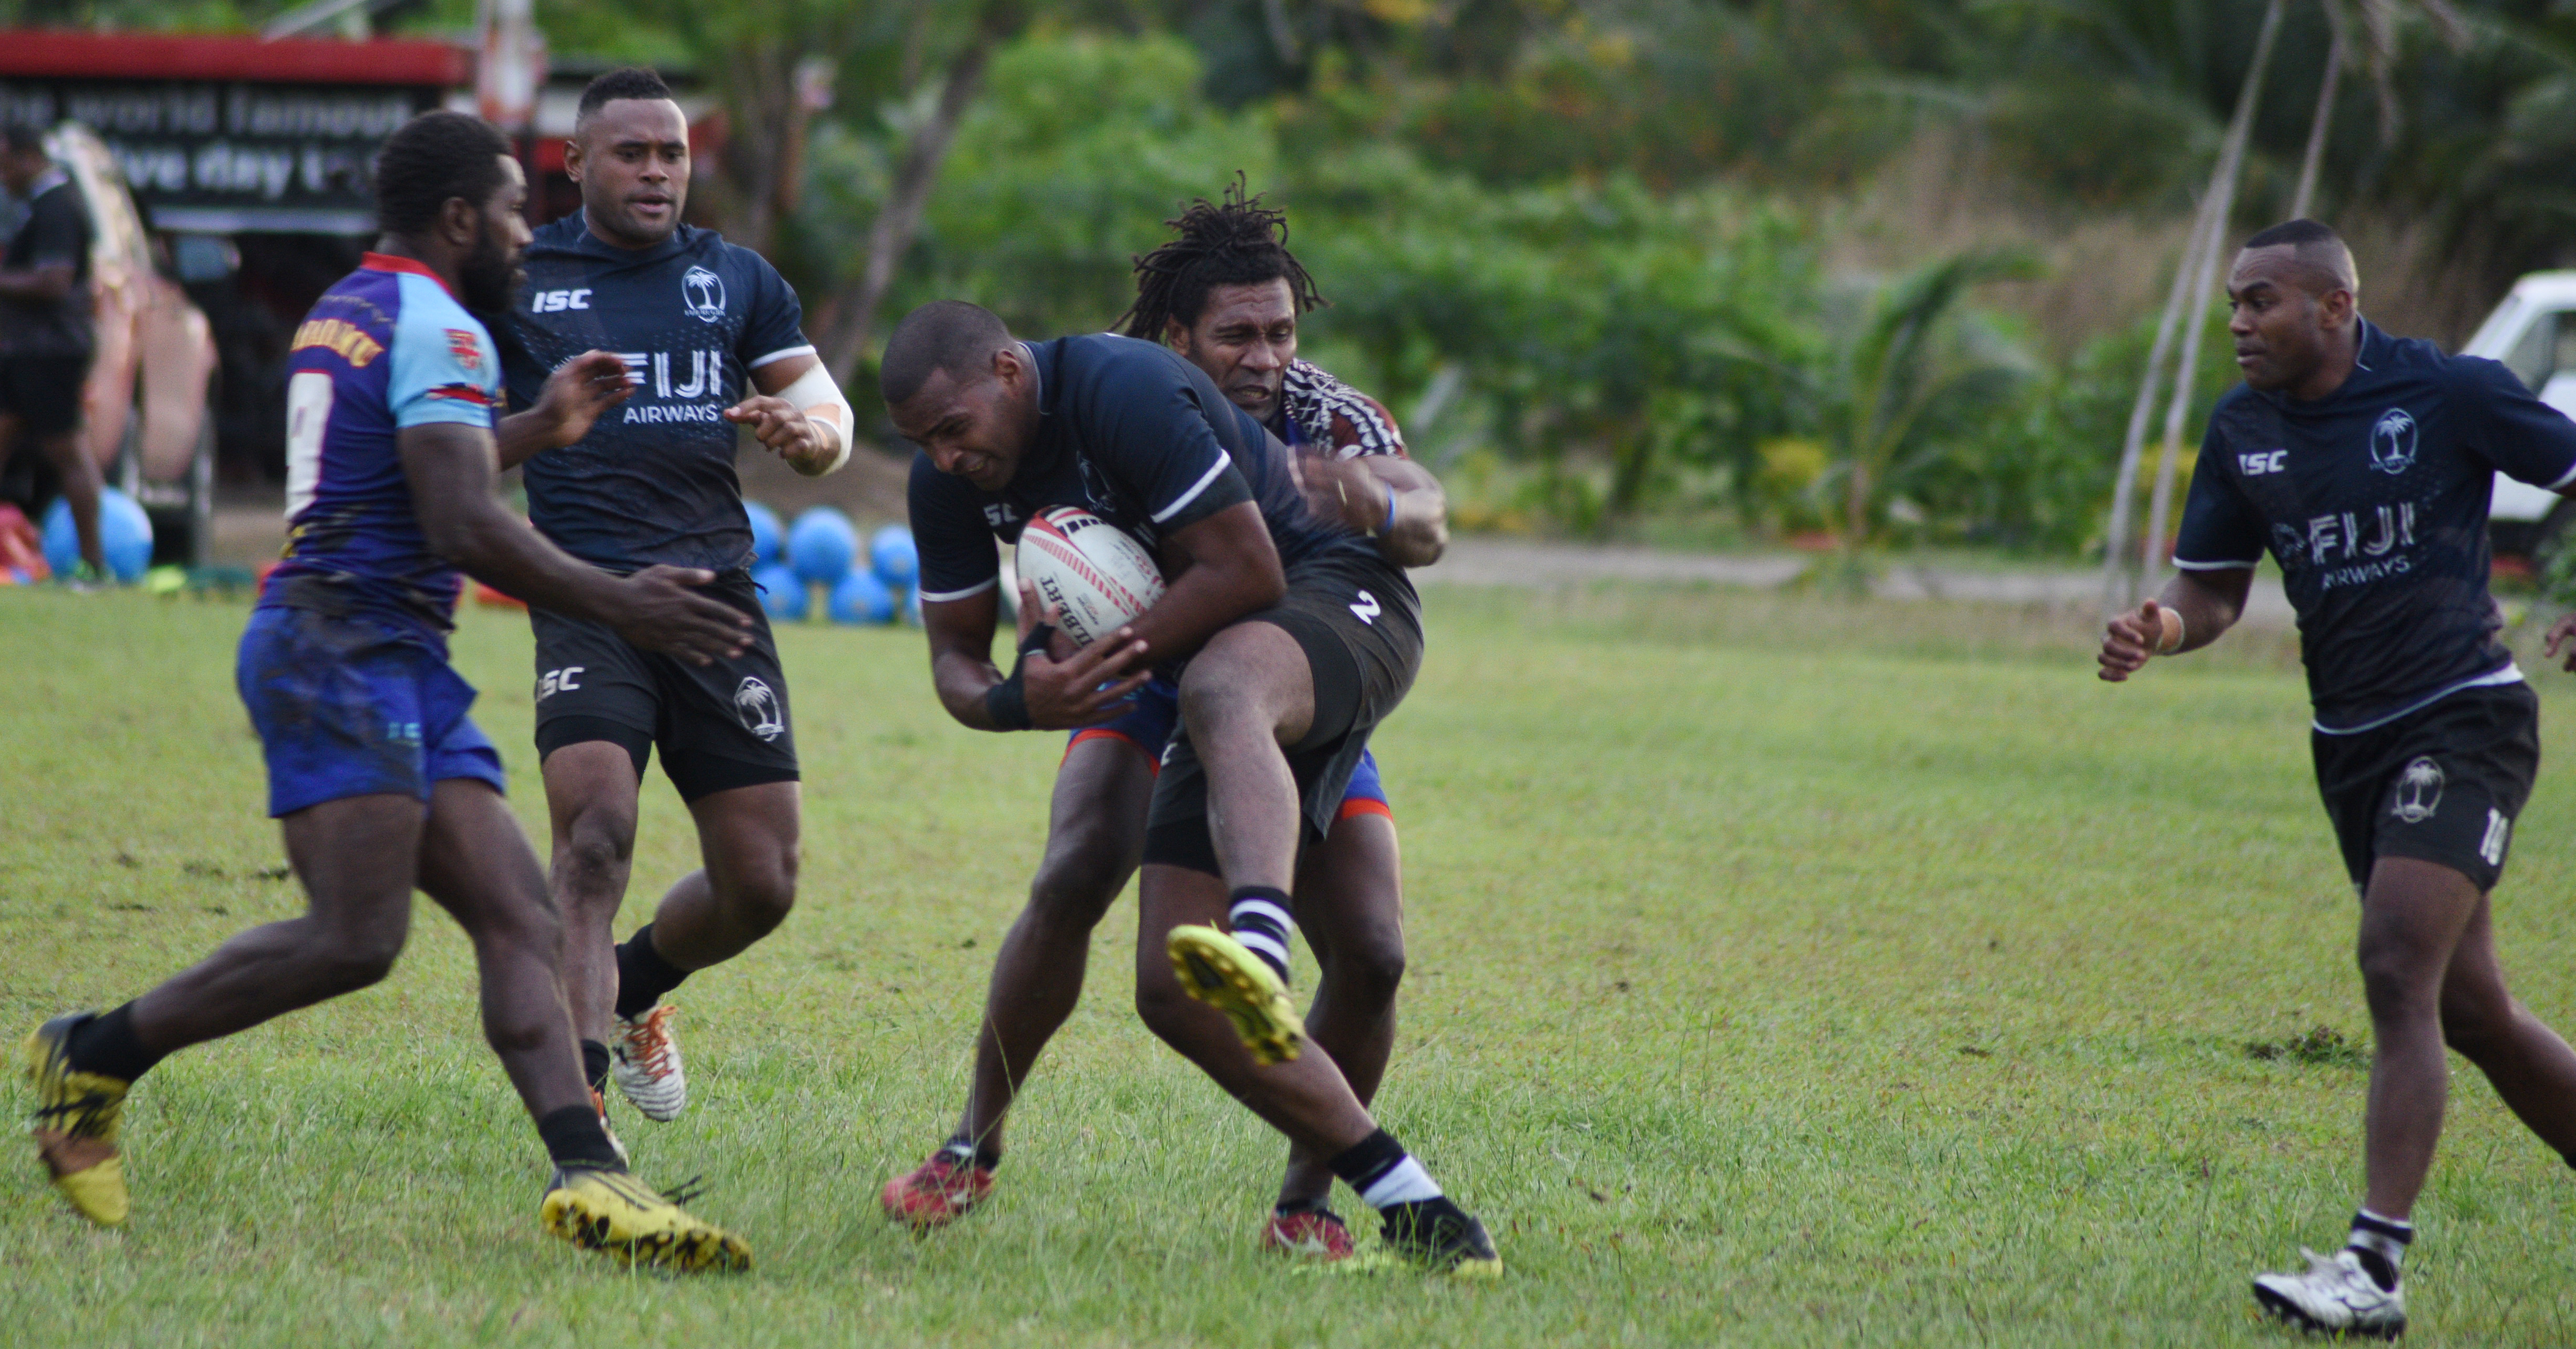 Fiji Airways Fijian 7s side while training with the Tabacamu side at Uprising Ground in Pacific Harbour on June 27, 2018. Photo: Ronald Kumar.